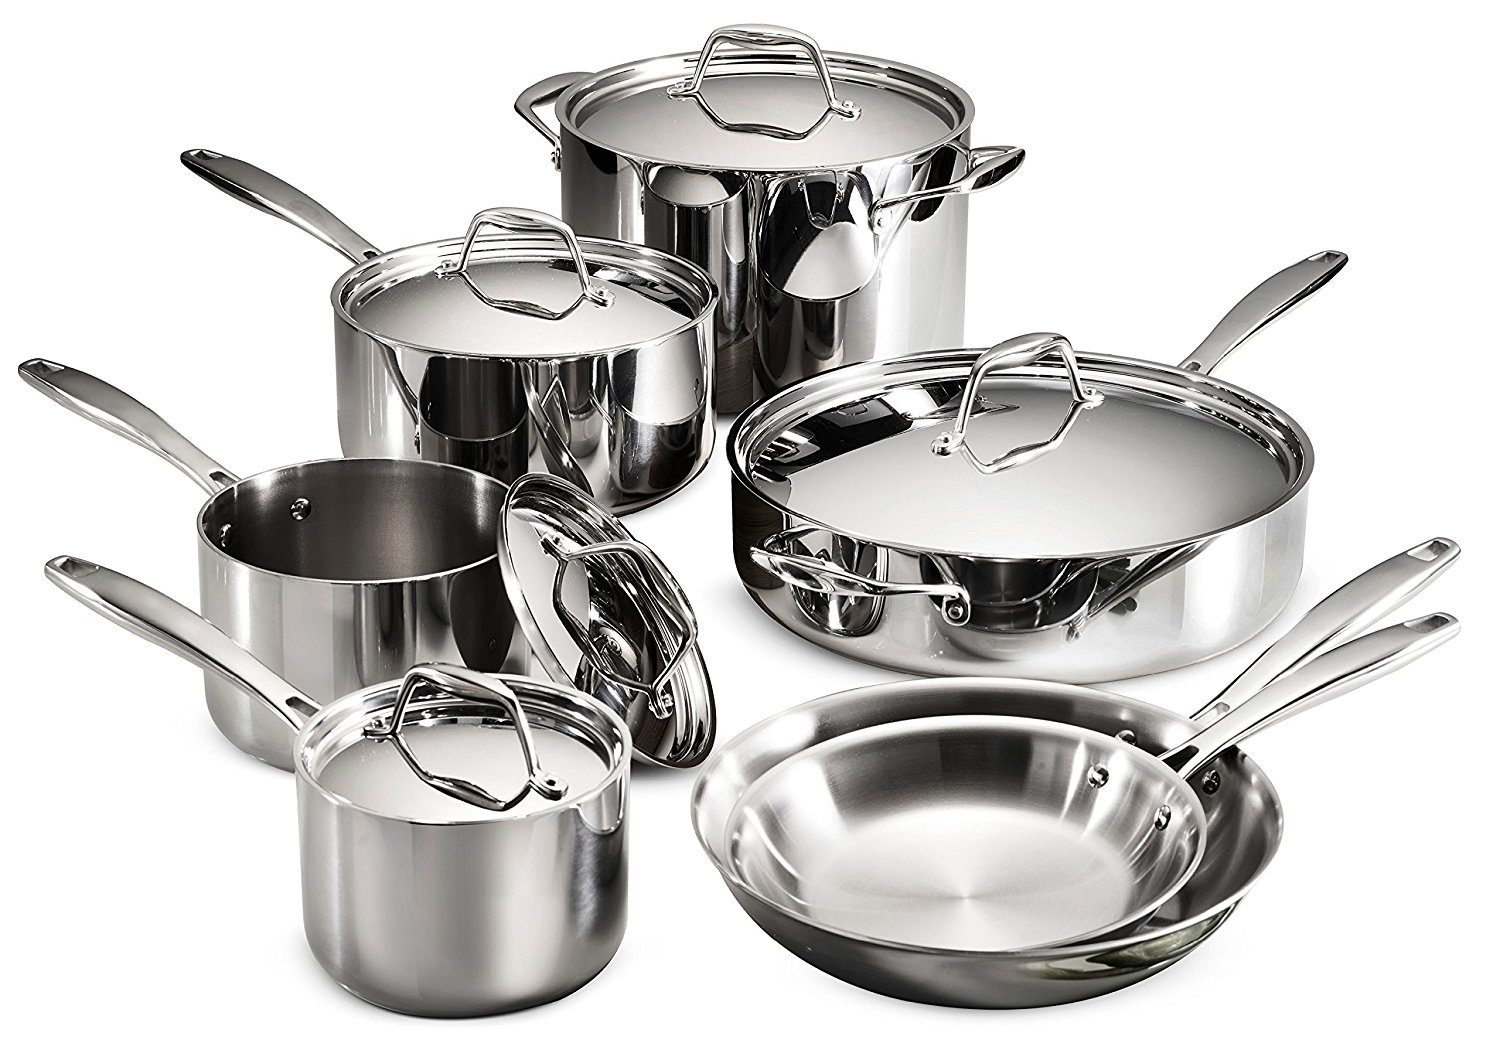 tramontina vs all clad cookware review stainless steel tri ply clad. Black Bedroom Furniture Sets. Home Design Ideas